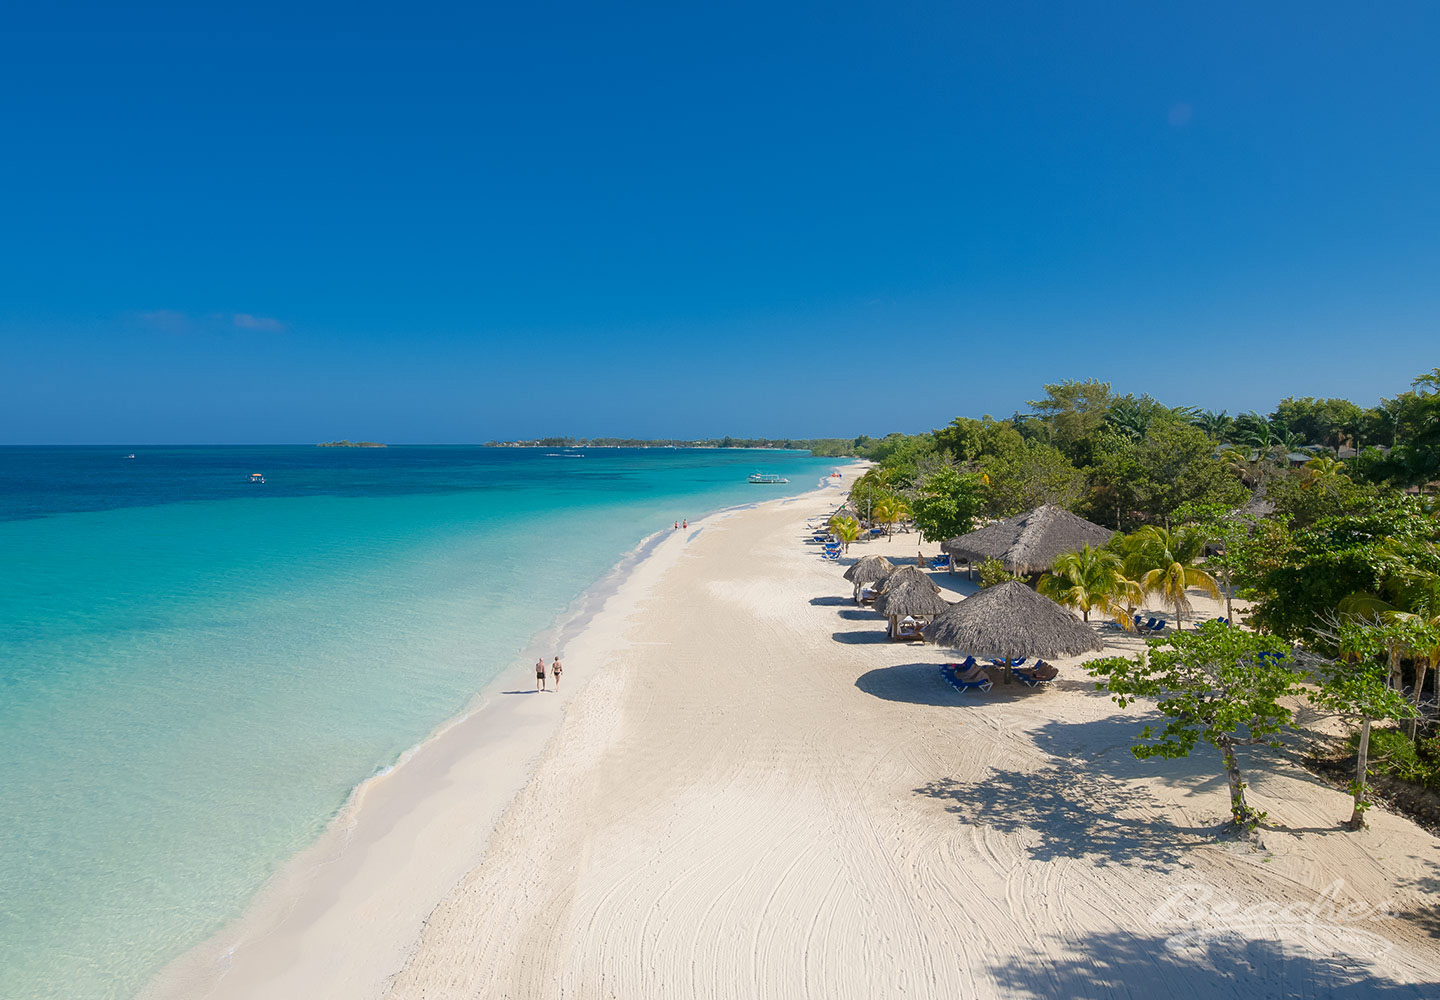 Travel Agency All-Inclusive Resort Beaches Negril 012